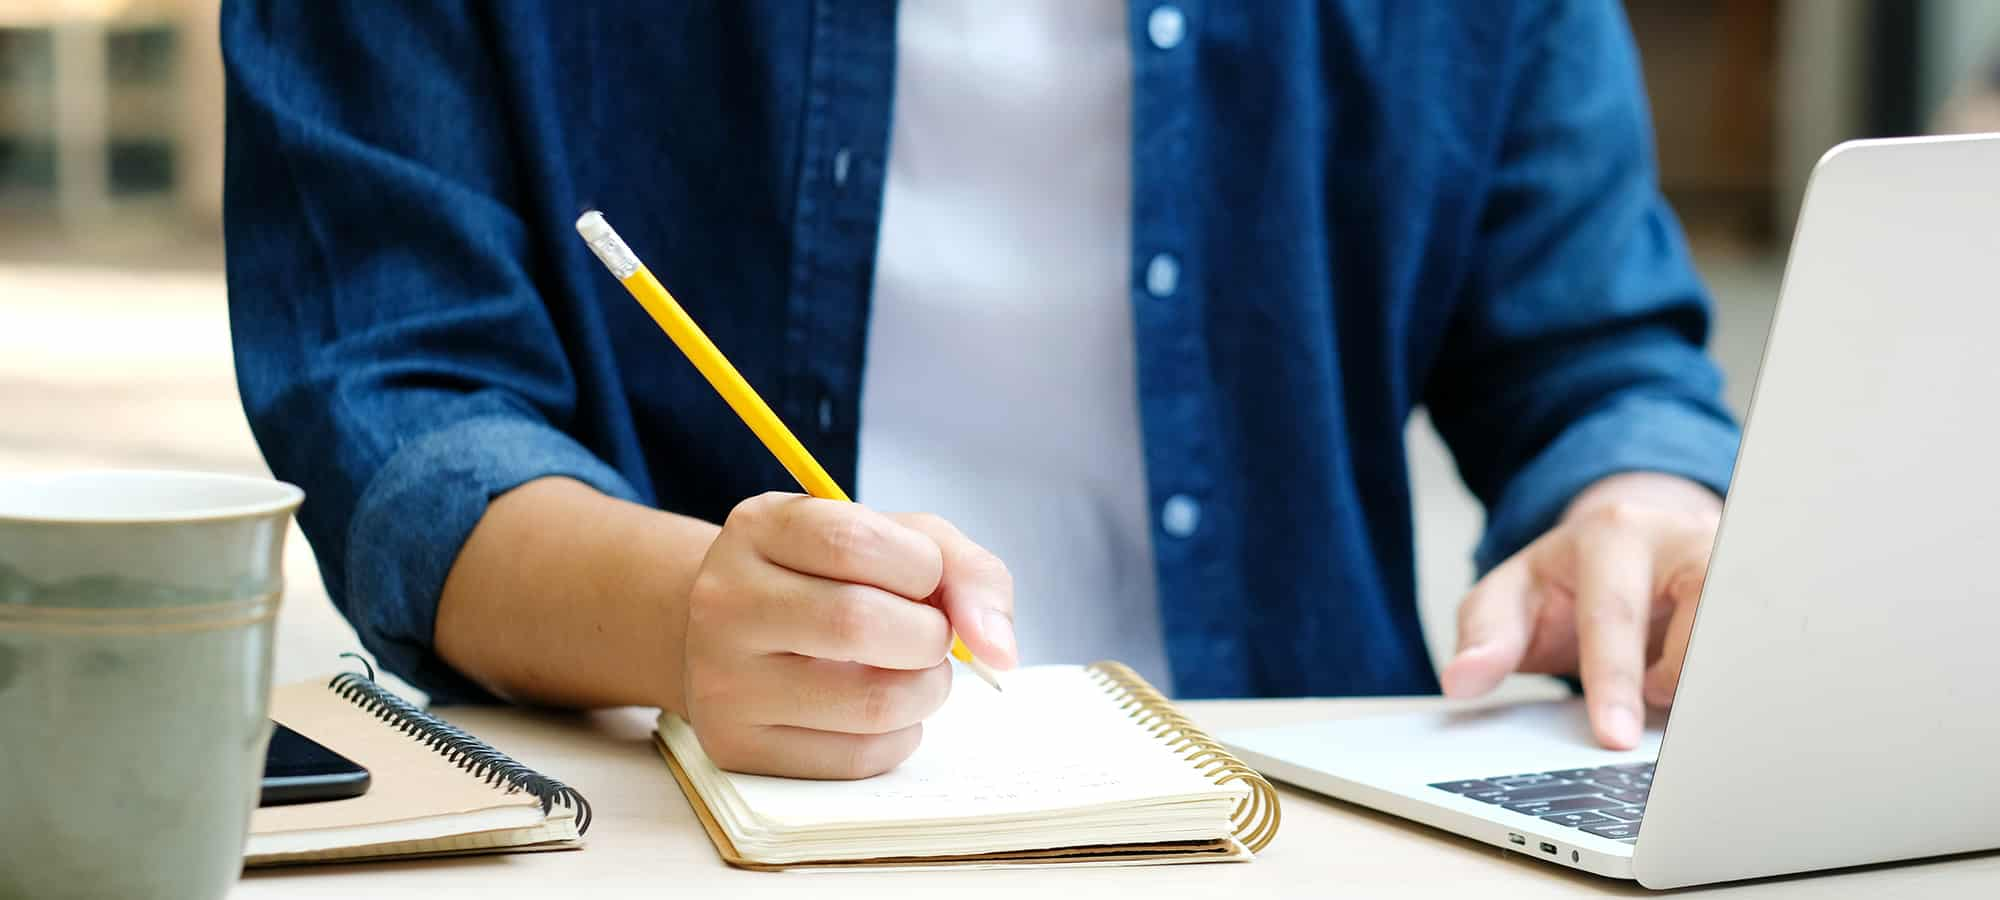 6 Powerful Reasons You Should Write Your Goals Down